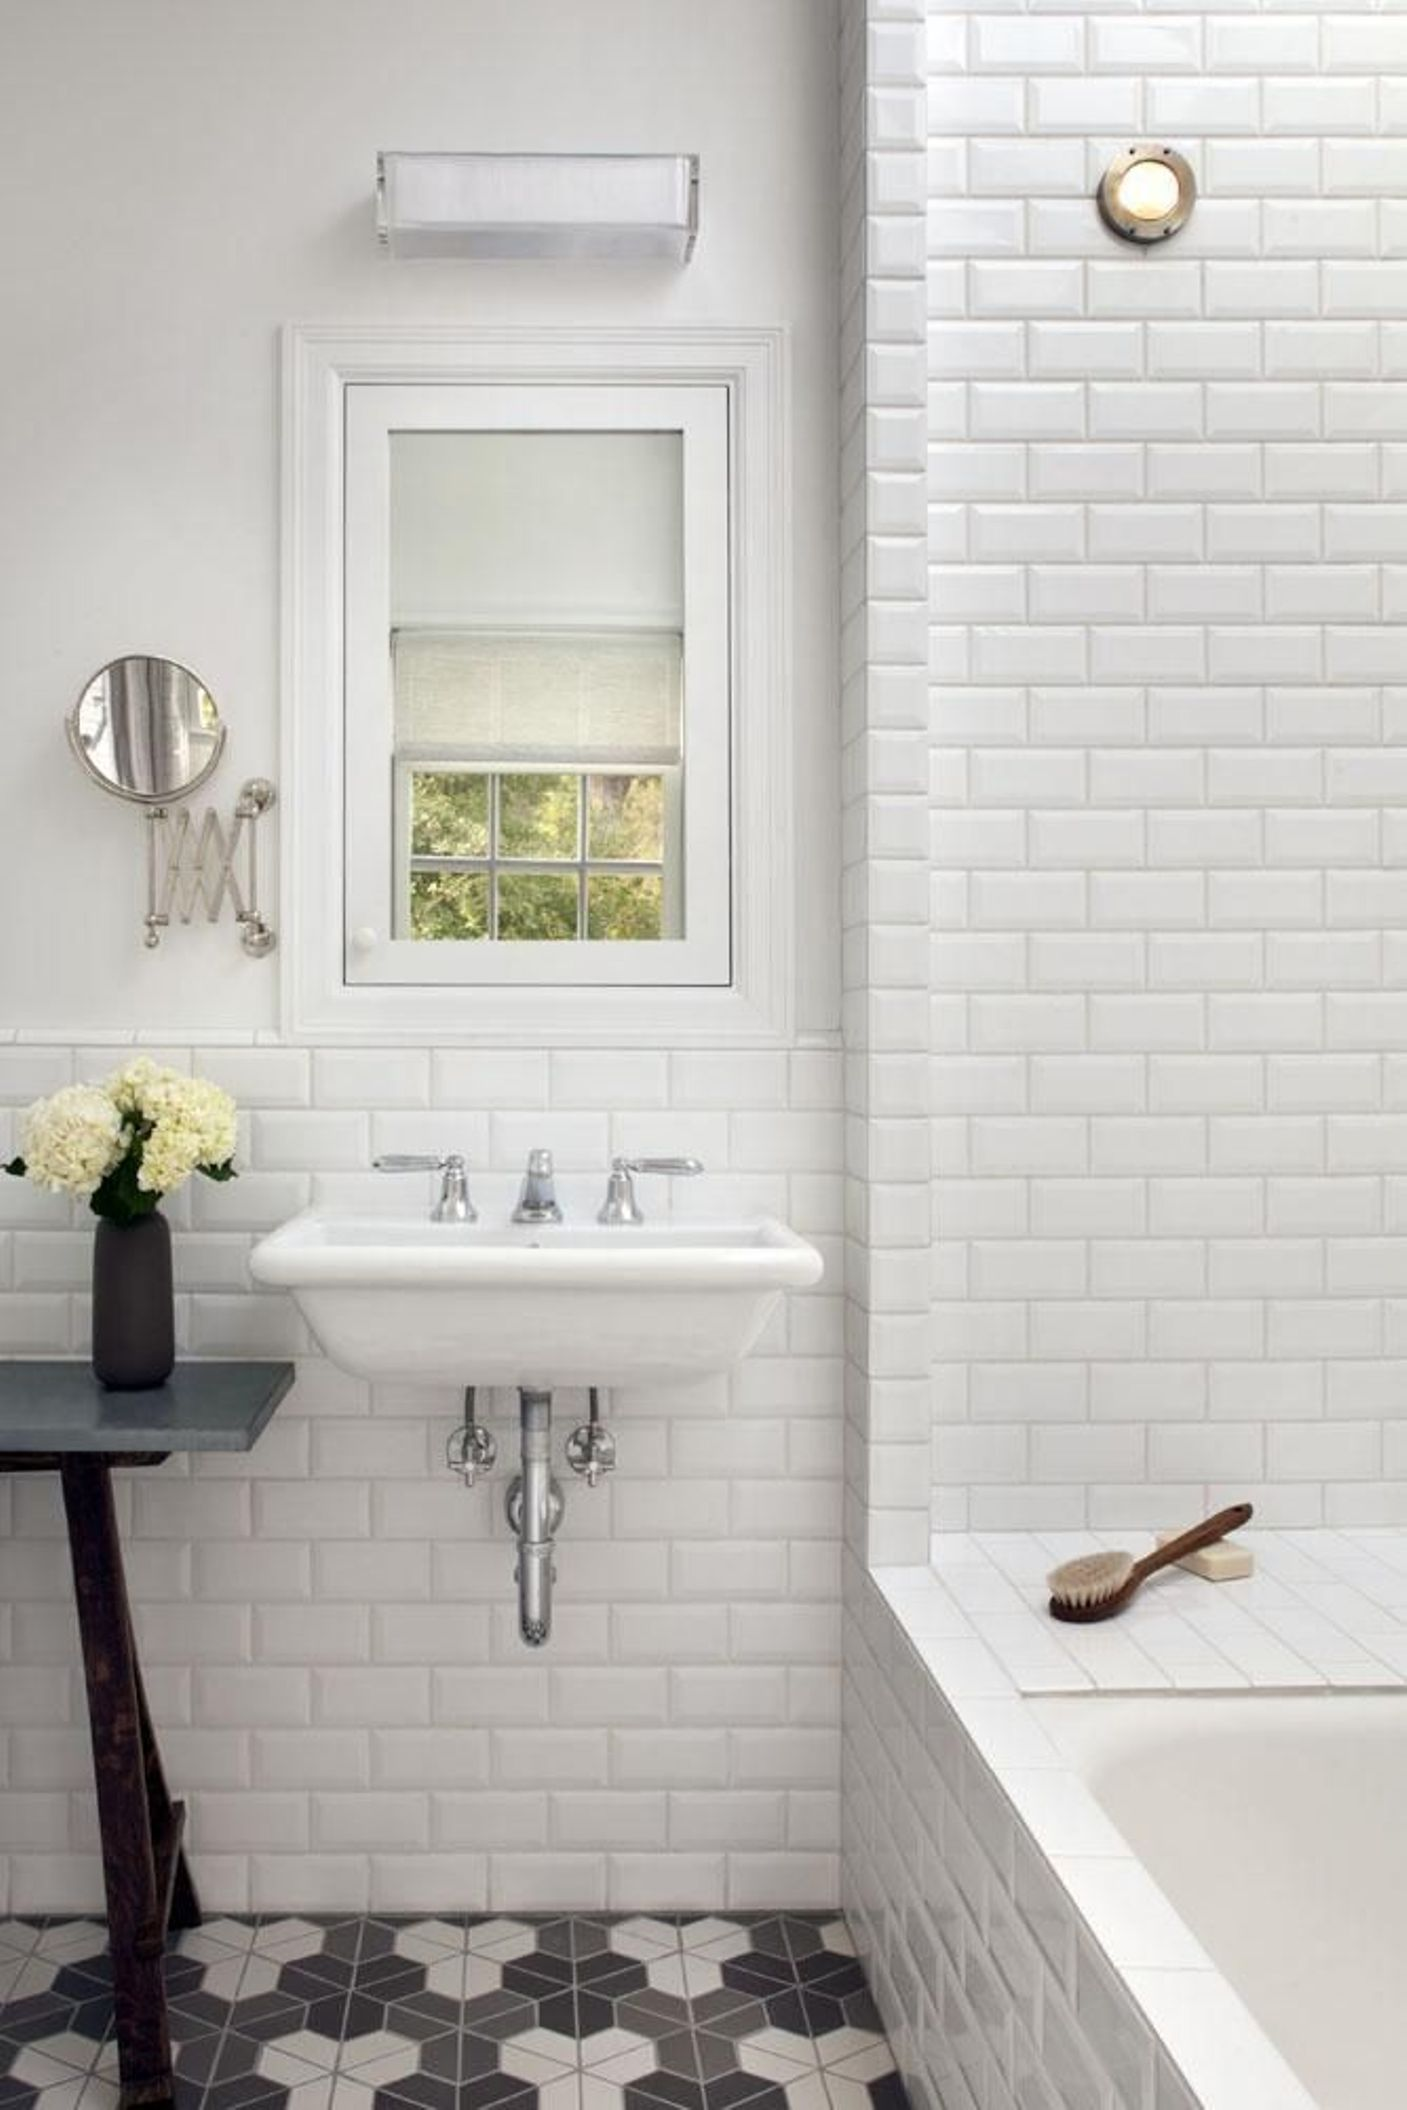 30 Ideas On Using Hex Tiles For Bathroom Floors 2019